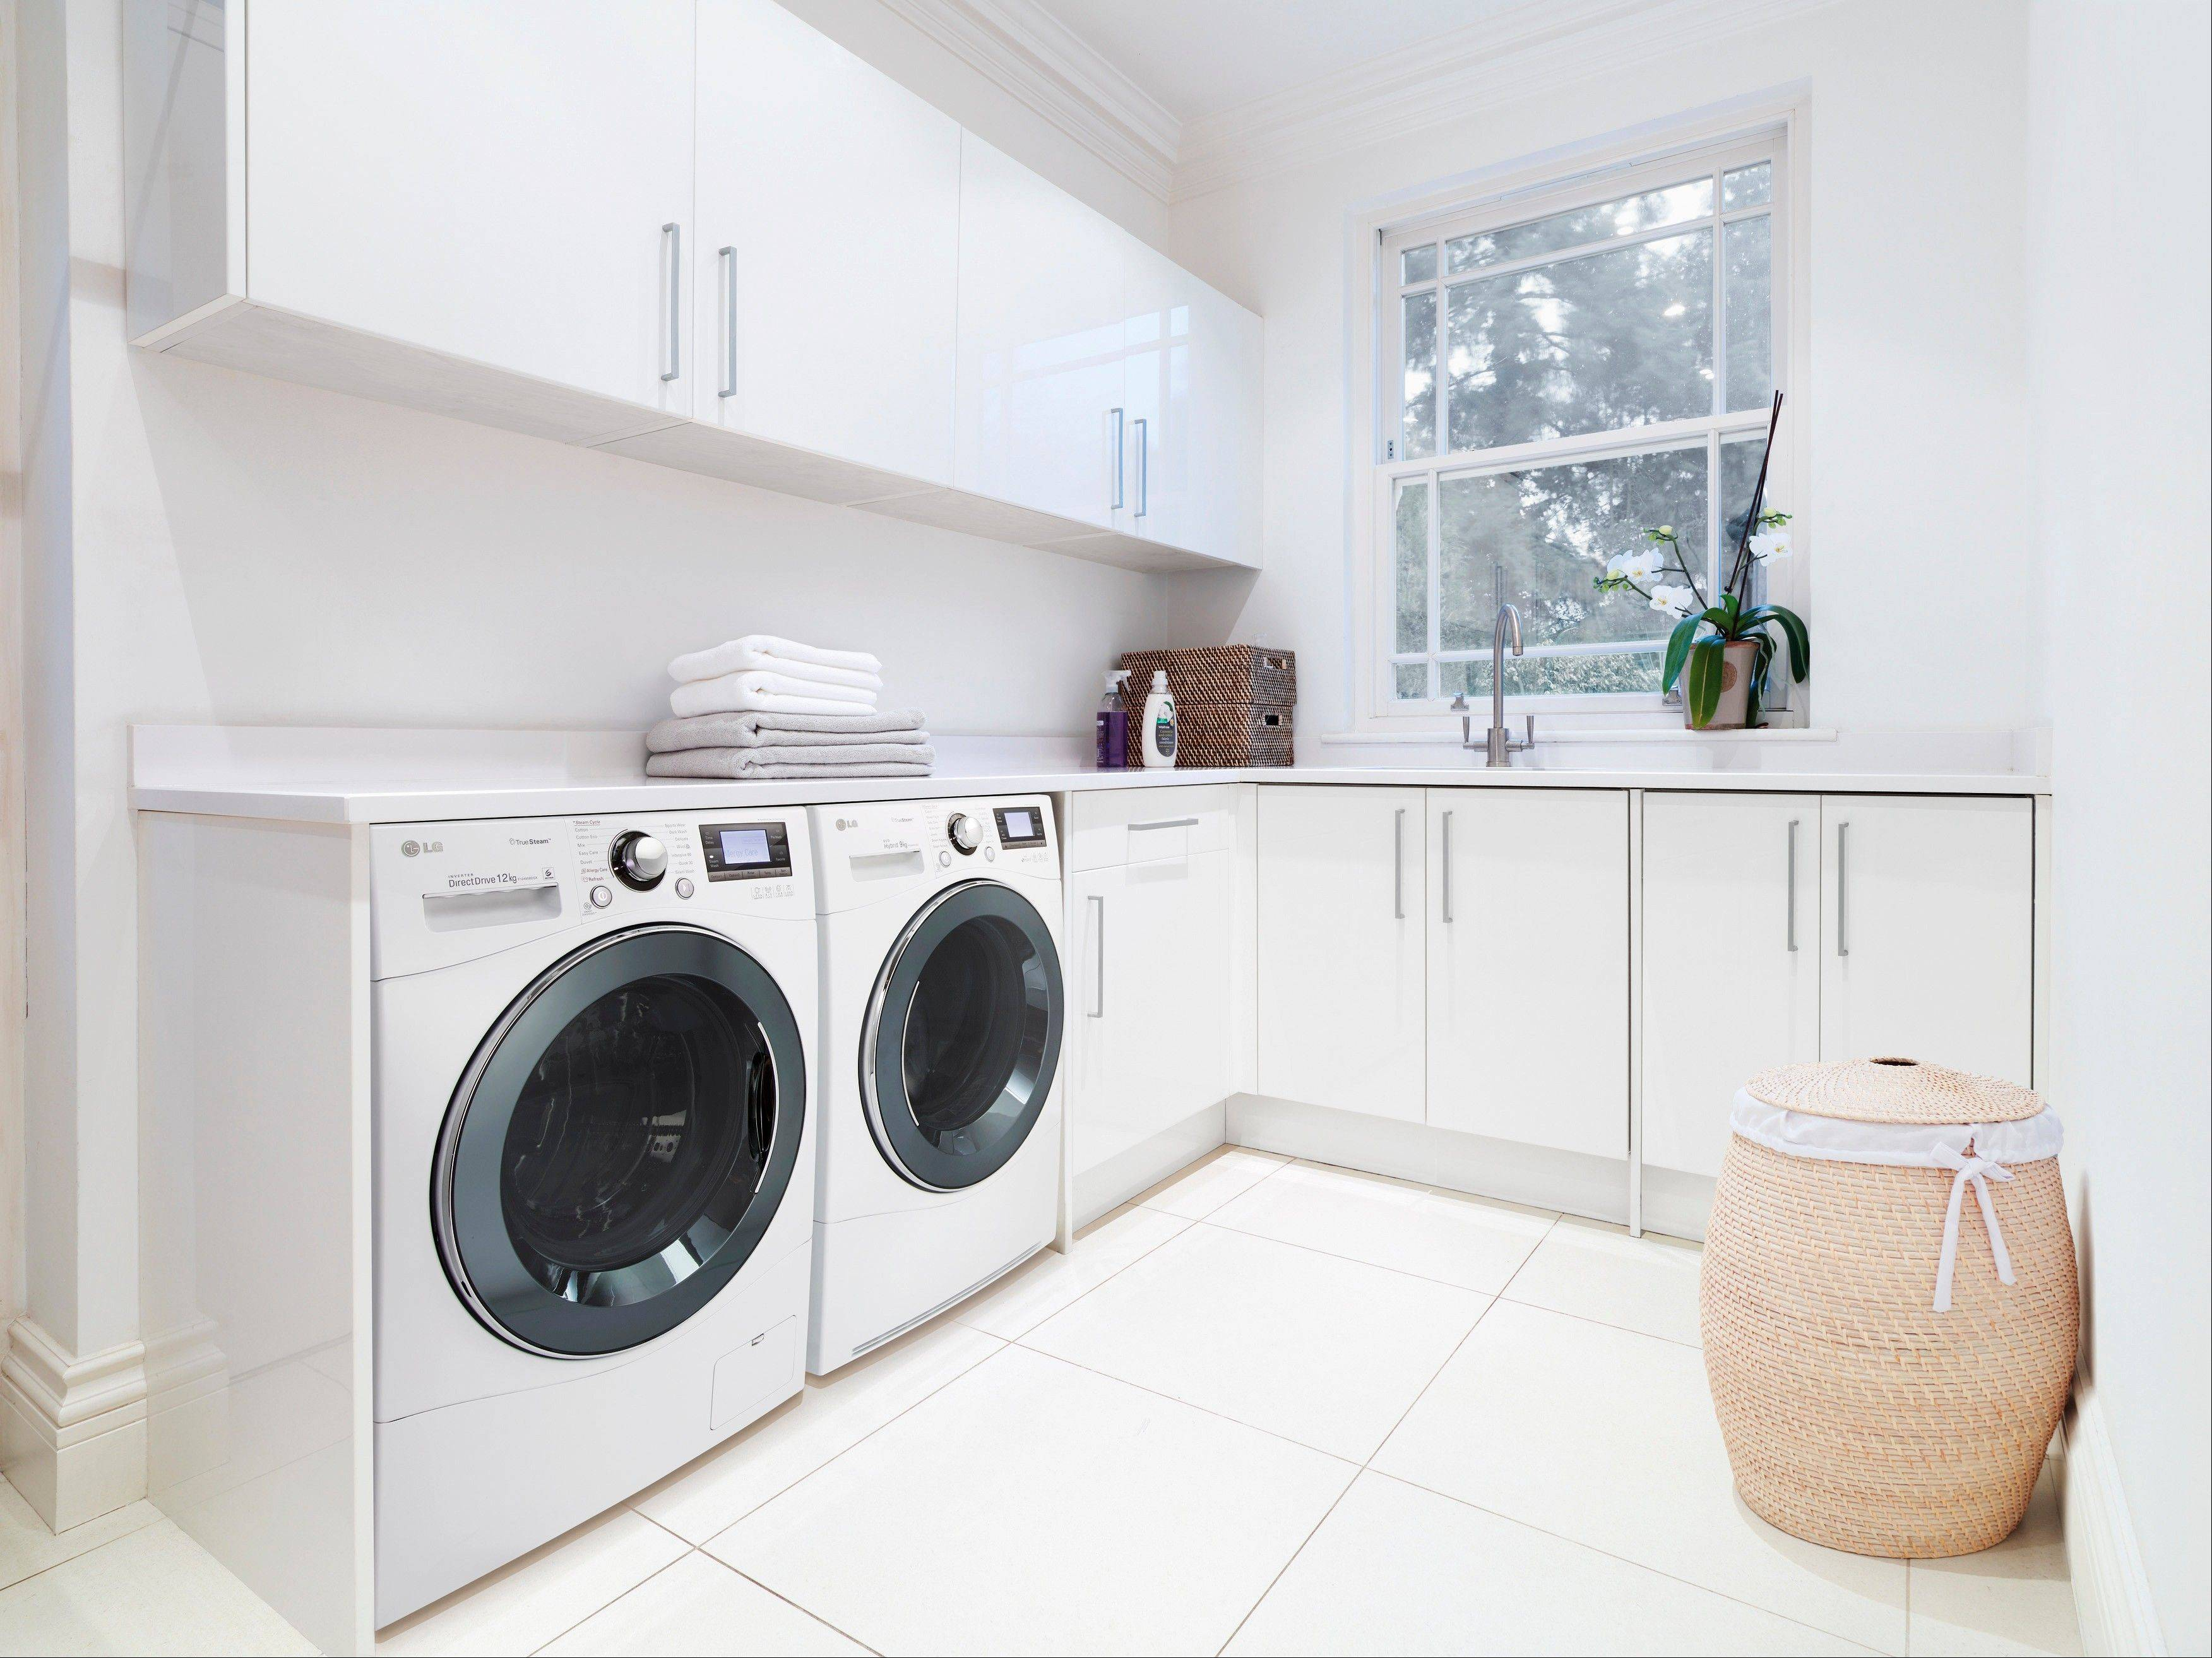 LG's washing machine, with a Direct Drive motor, runs much quieter than conventional machines.